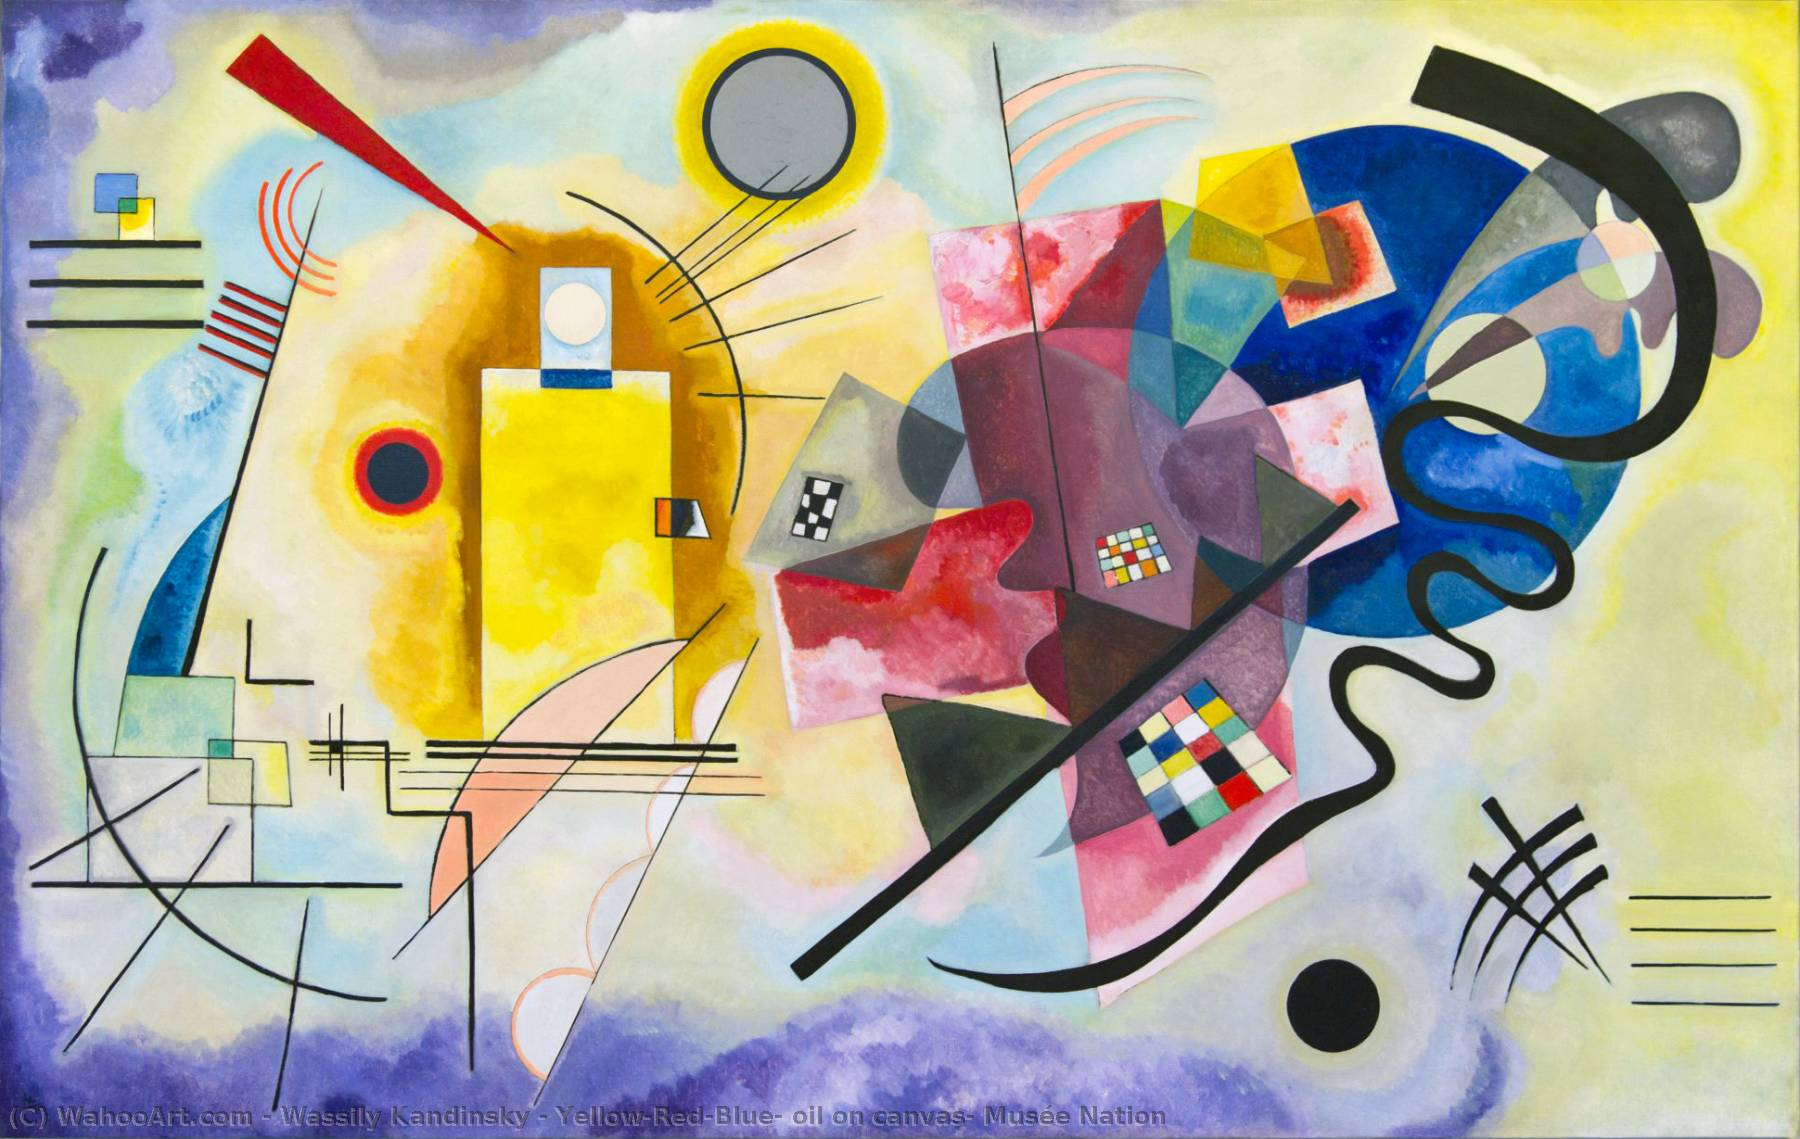 Yellow-Red-Blue, oil on canvas, Musée Nation, 1925 by Wassily Kandinsky (1866-1944, Russia) | Oil Painting | WahooArt.com